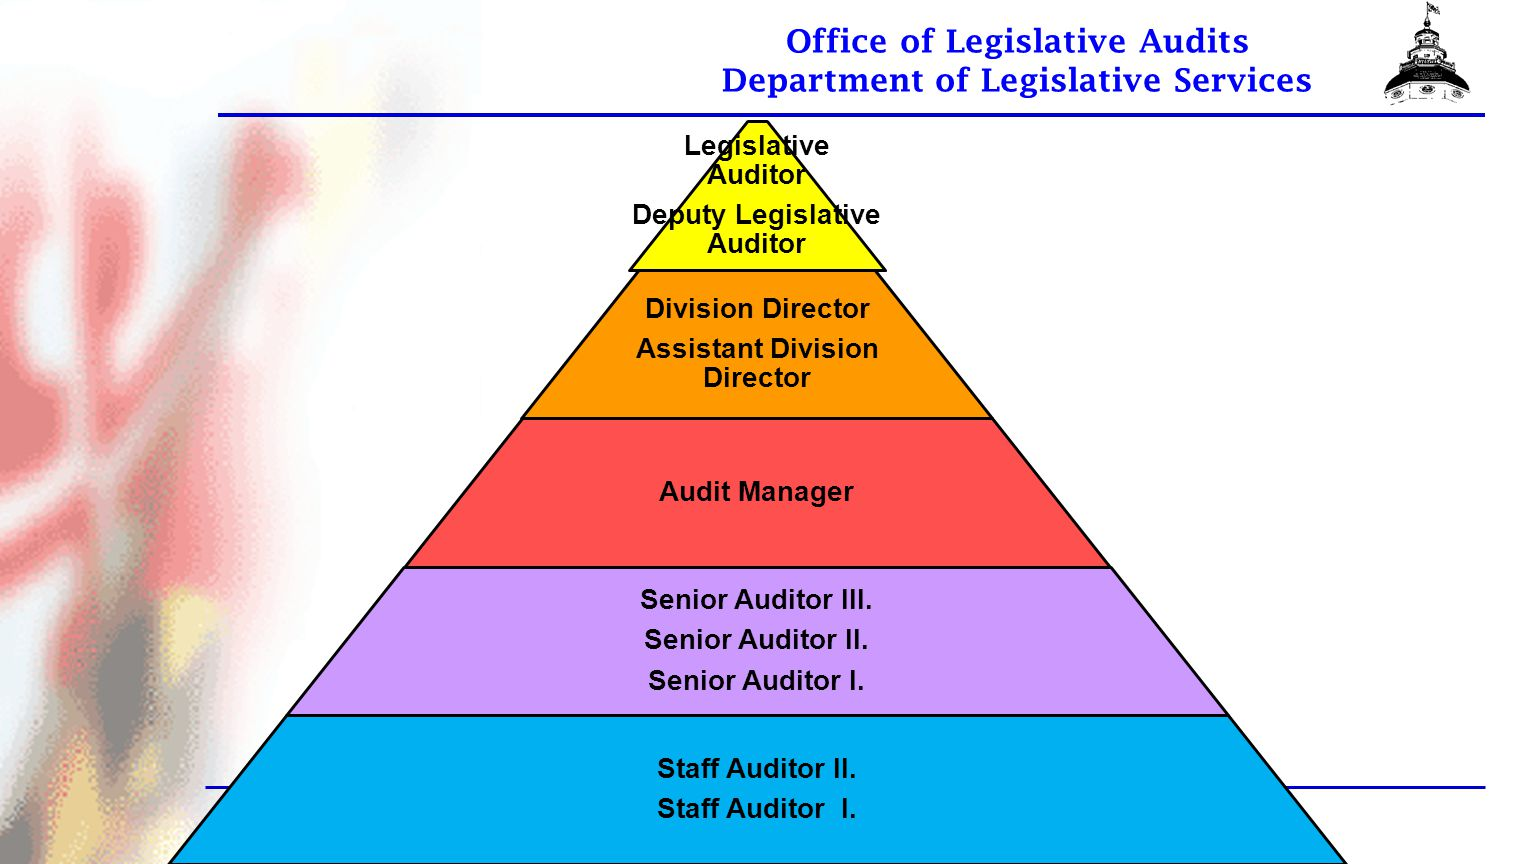 Office of Legislative Audits Department of Legislative Services